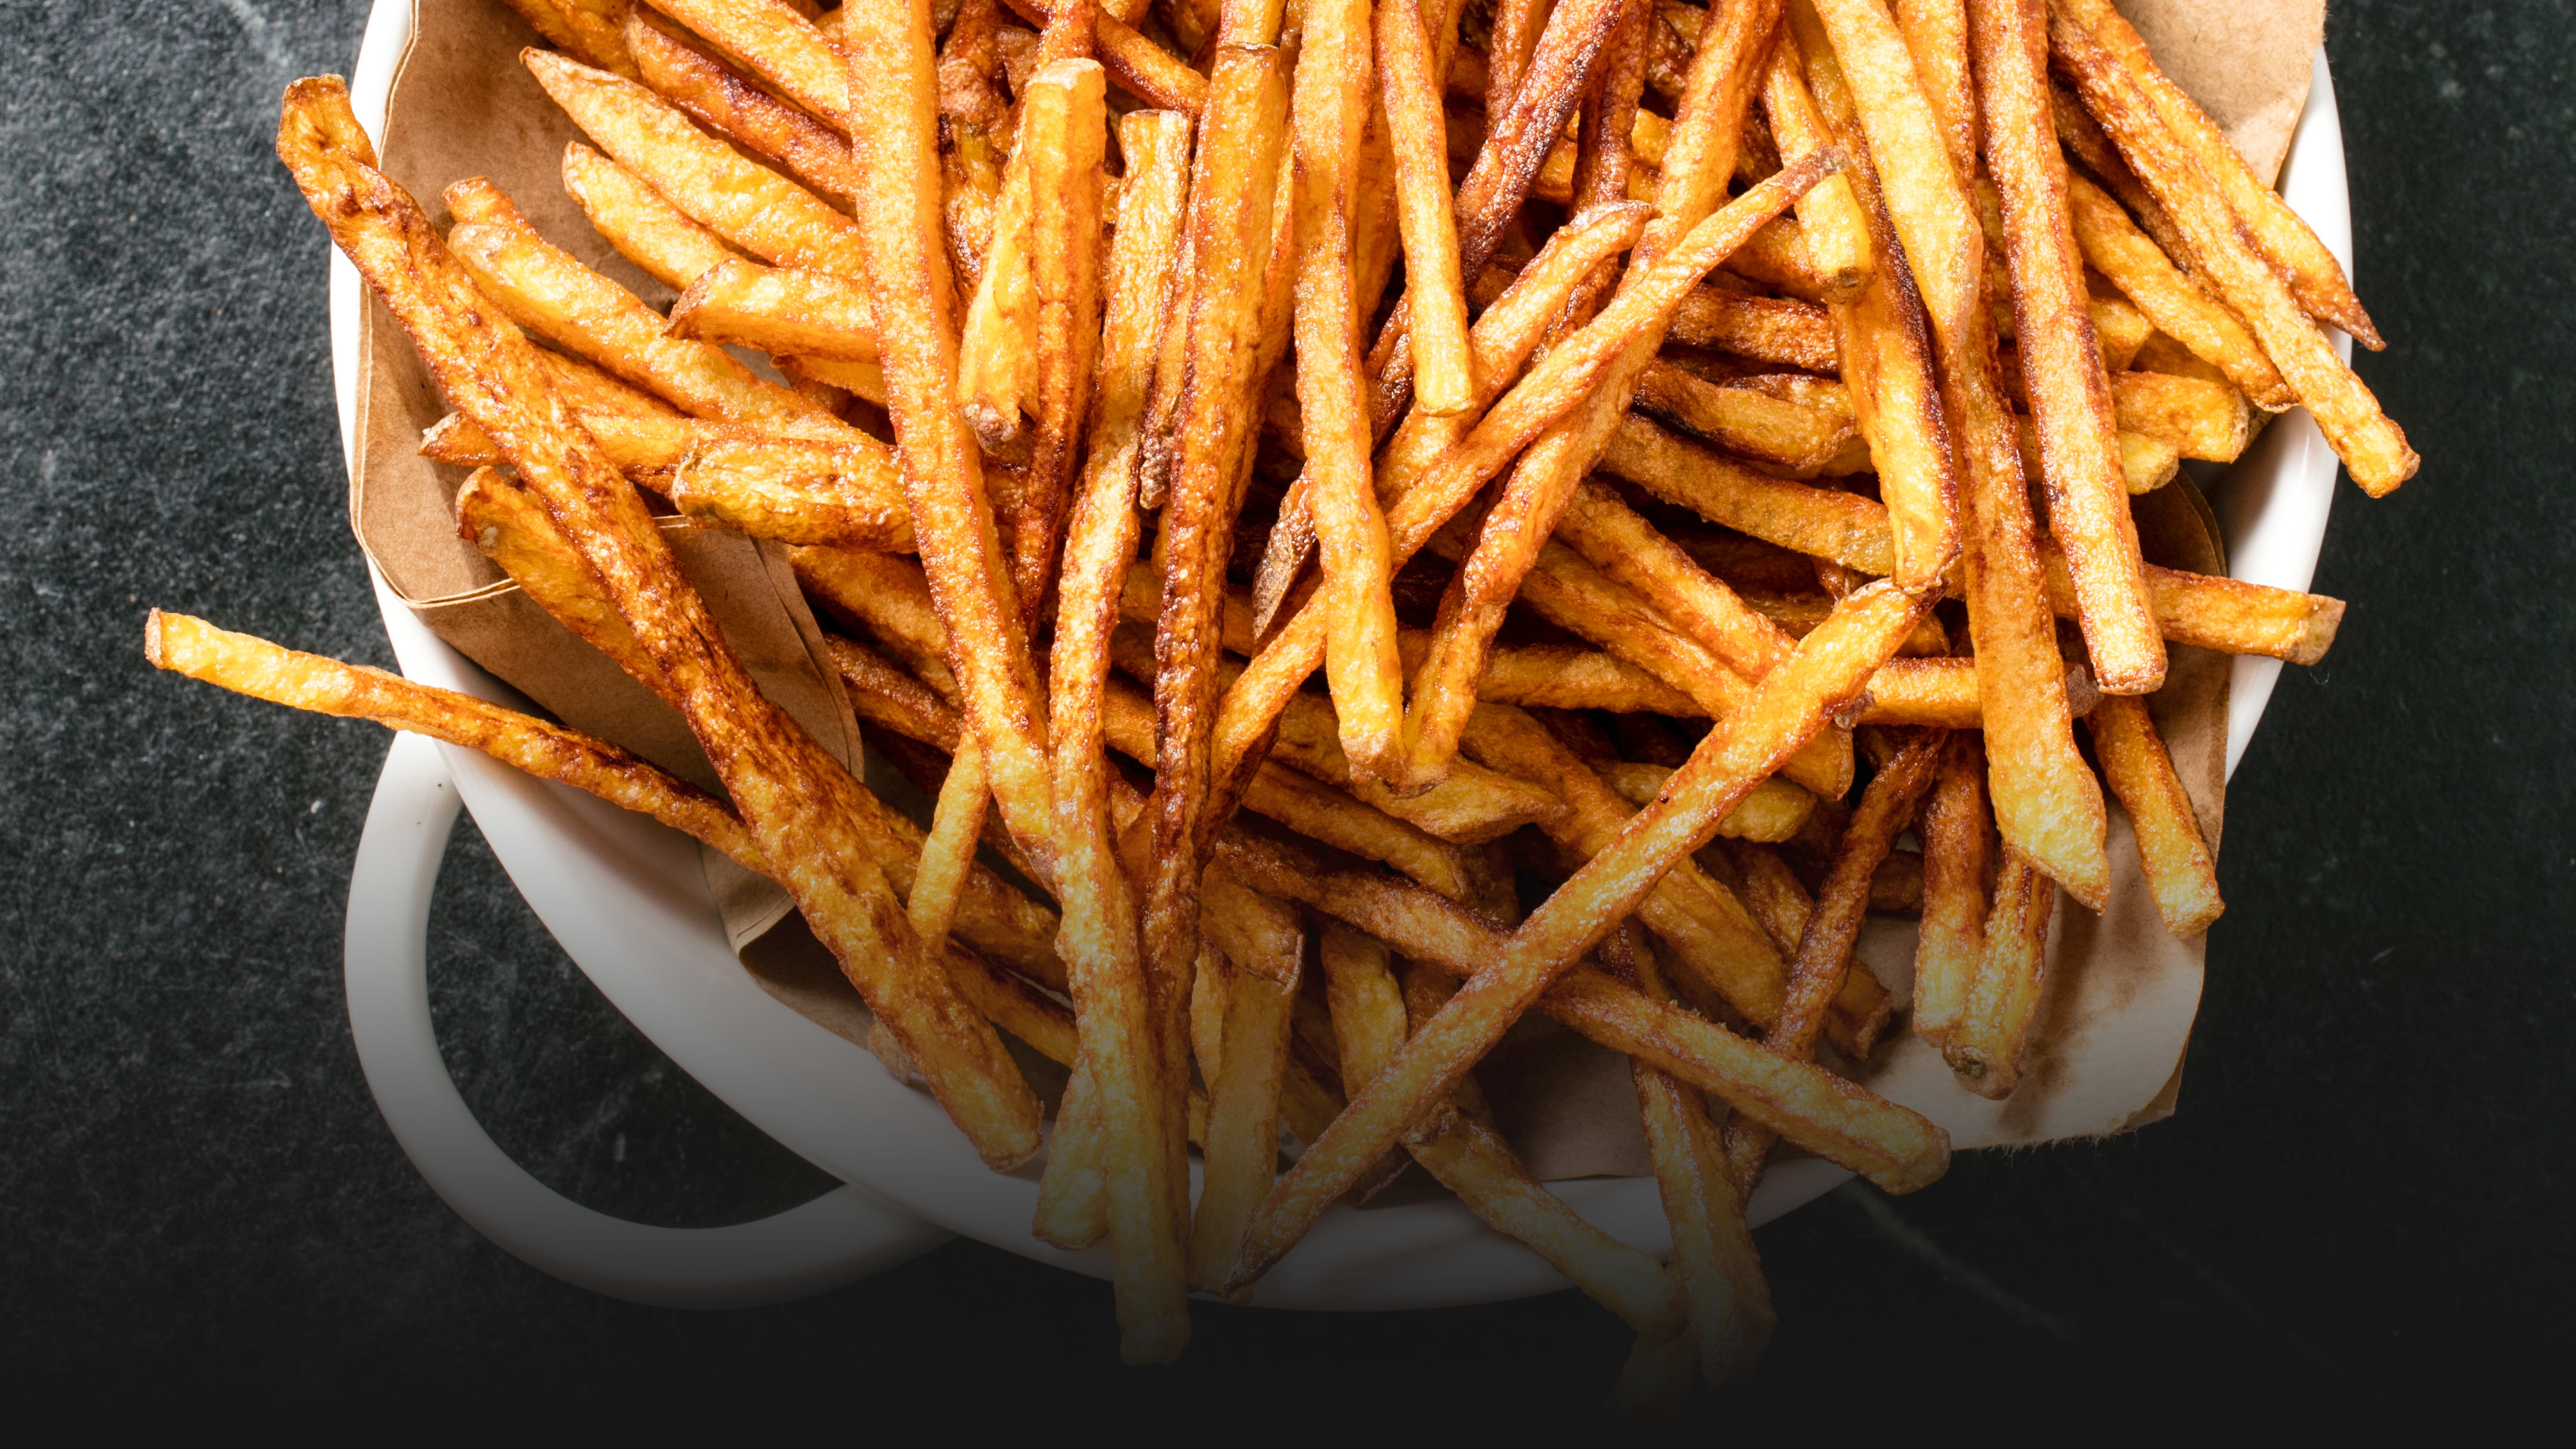 For Restaurant-Quality French Fries, Start with Cold Oil